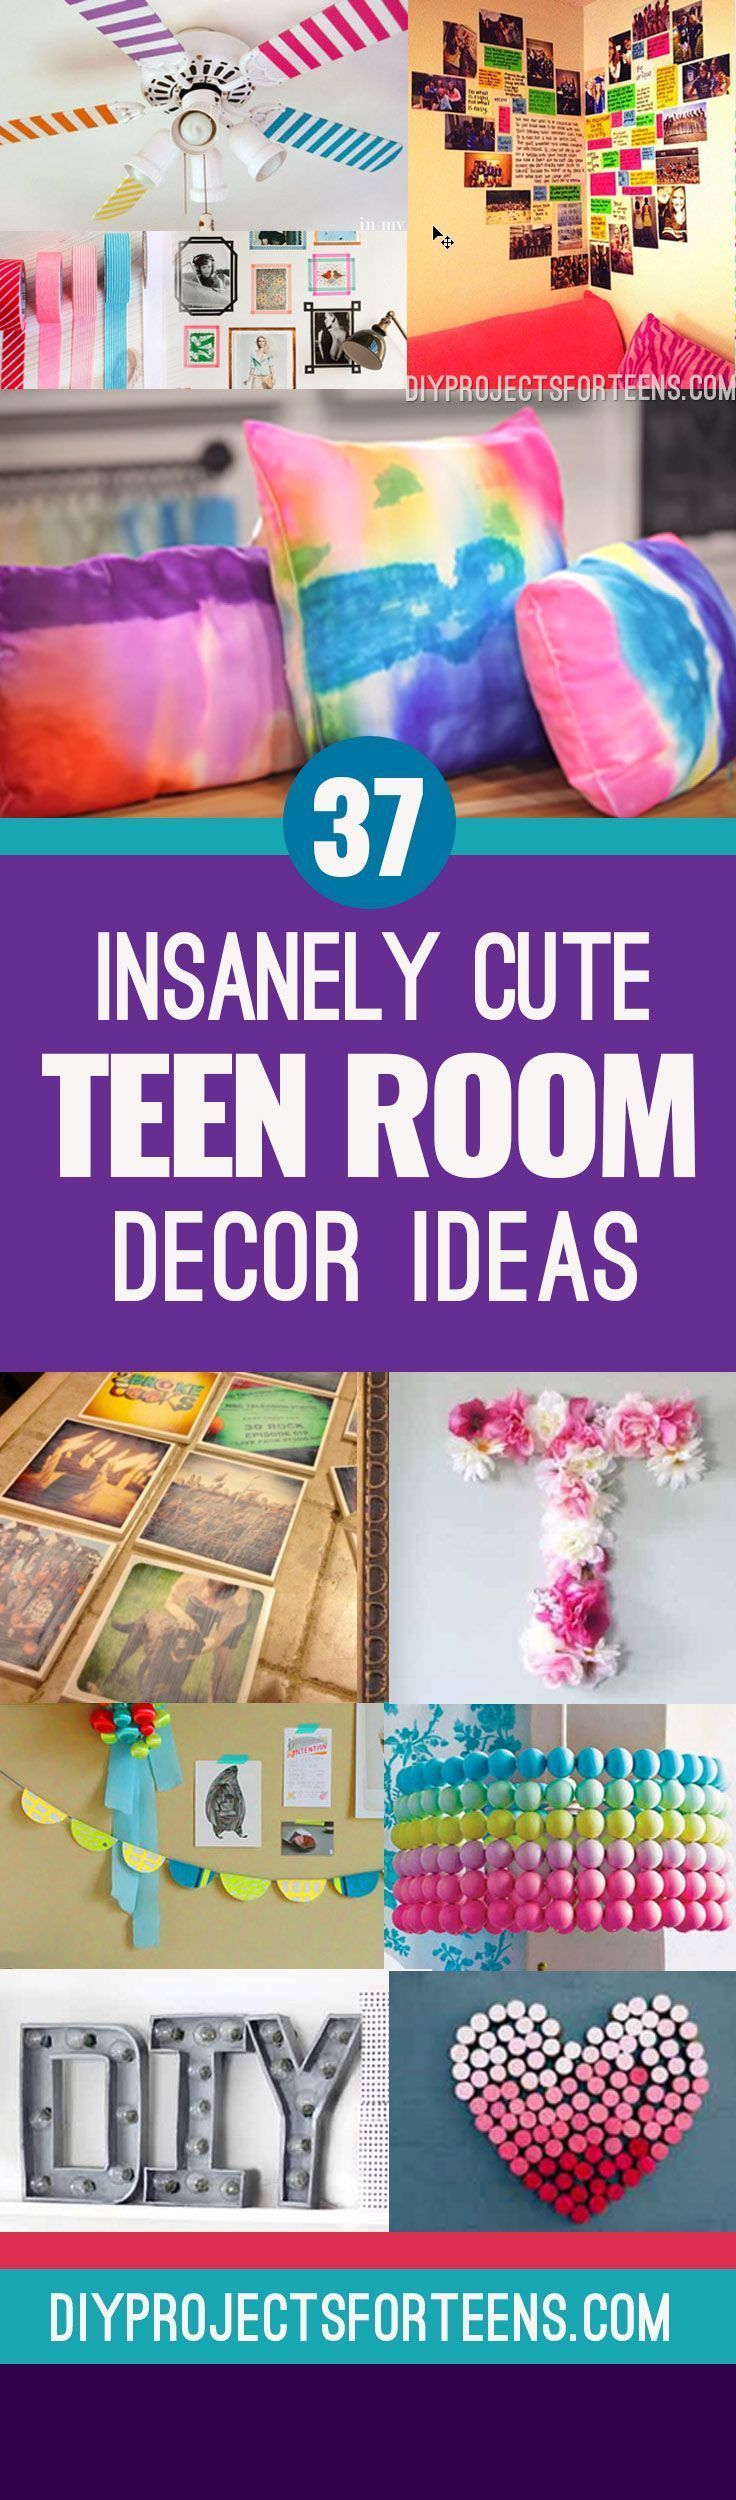 best 25+ diy teen room decor ideas on pinterest | diy room decore